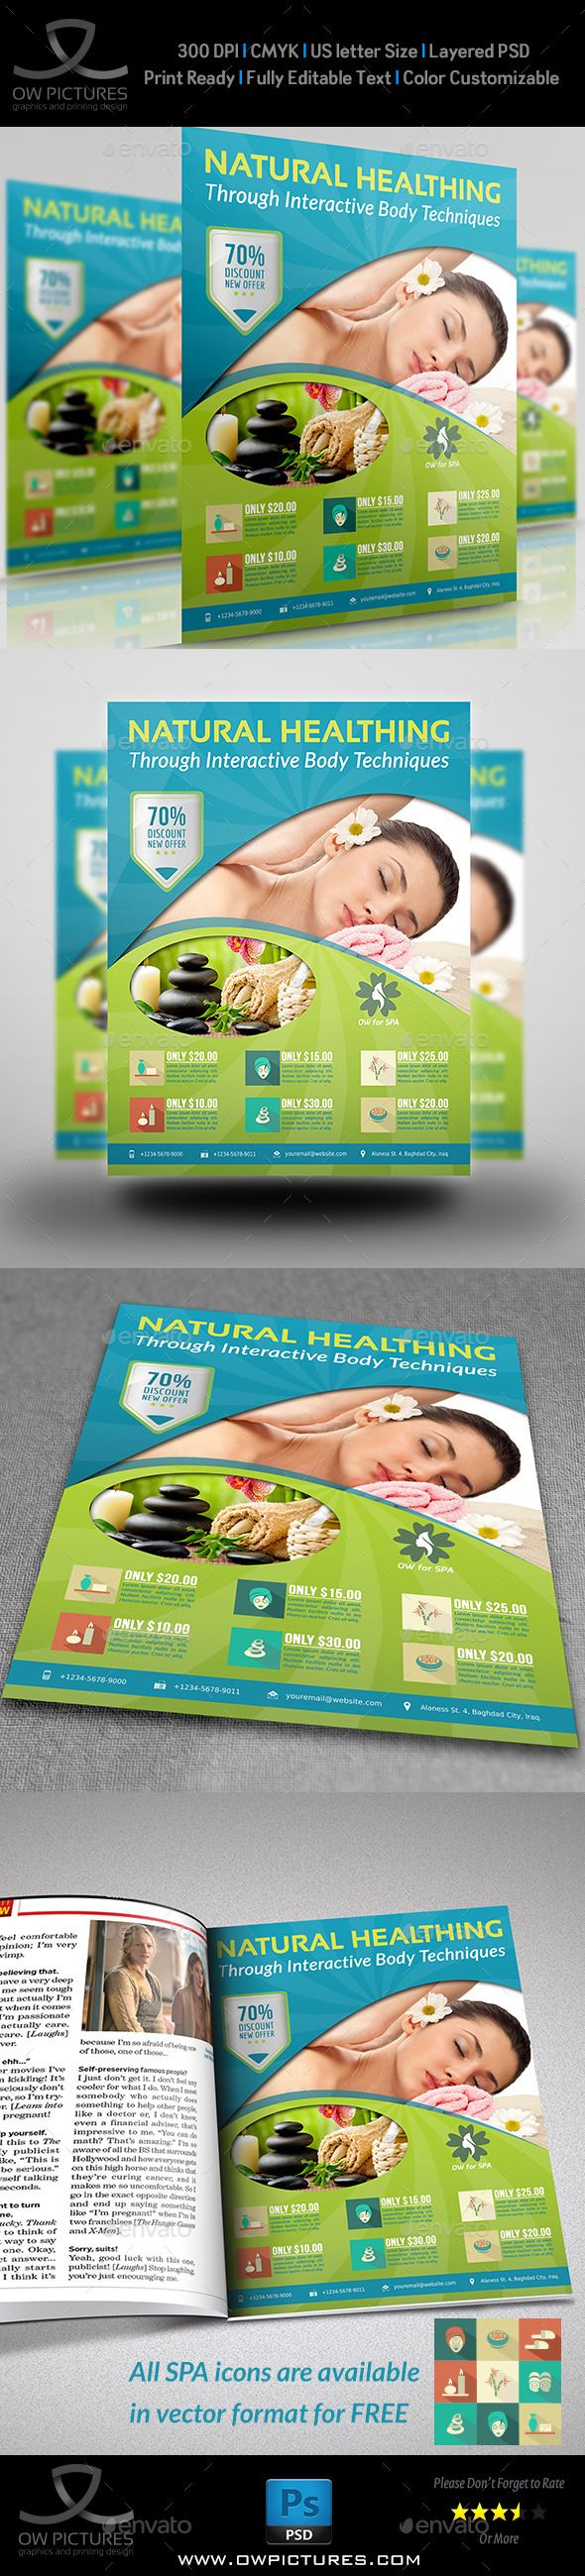 SPA Beauty Flyer Template PSD | Buy and Download: http://graphicriver.net/item/spa-beauty-flyer-template/8961939?WT.ac=category_thumb&WT.z_author=omar_almudaries&ref=ksioks